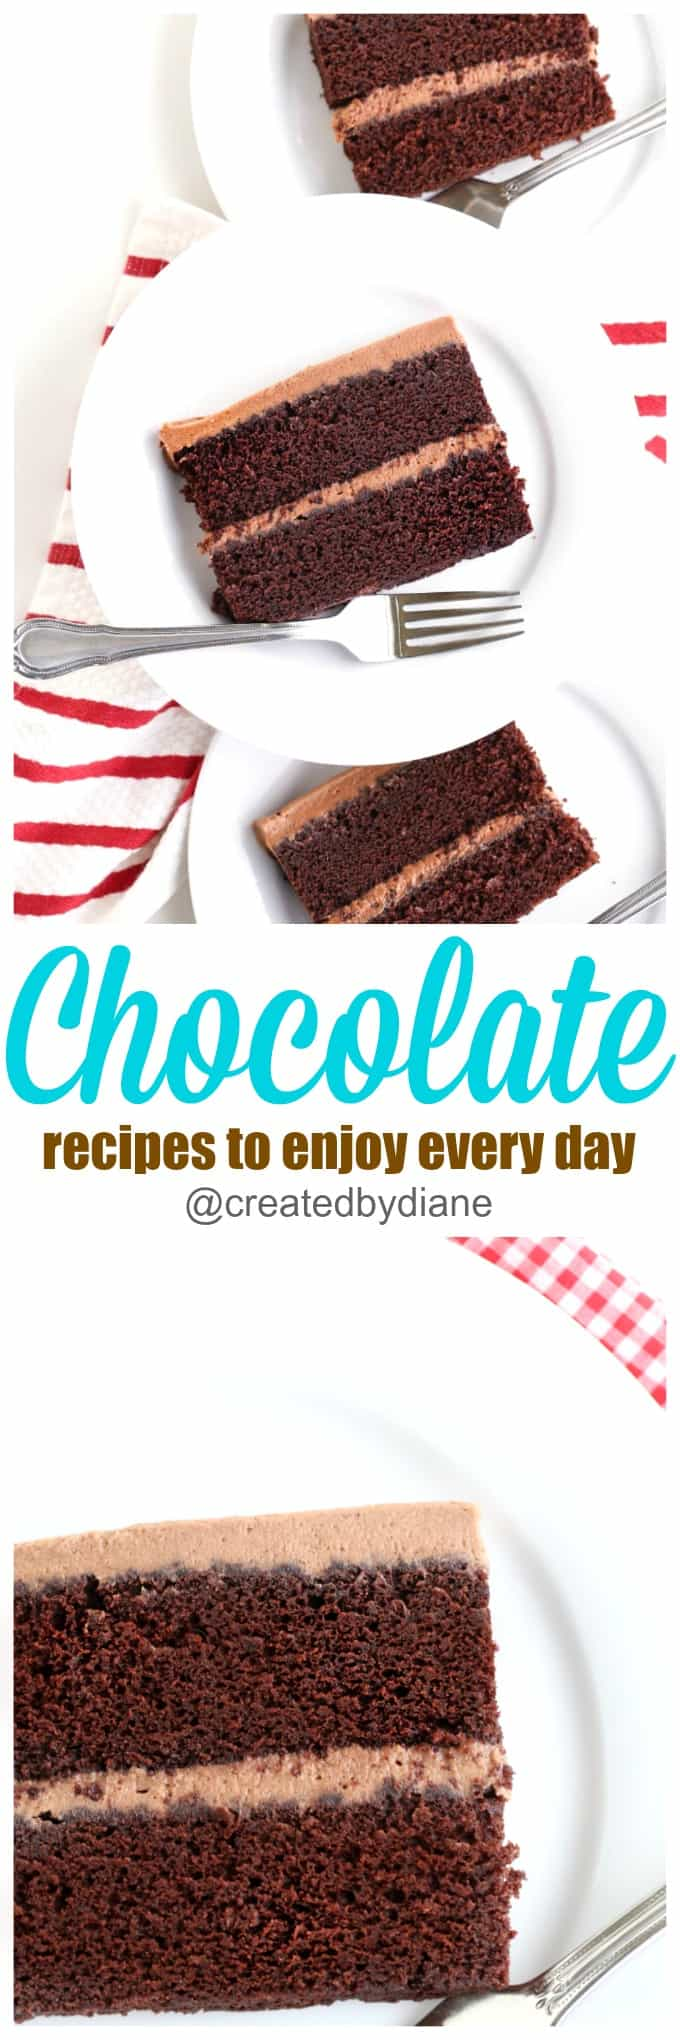 chocolate recipes to enjoy every day @createdbydiane